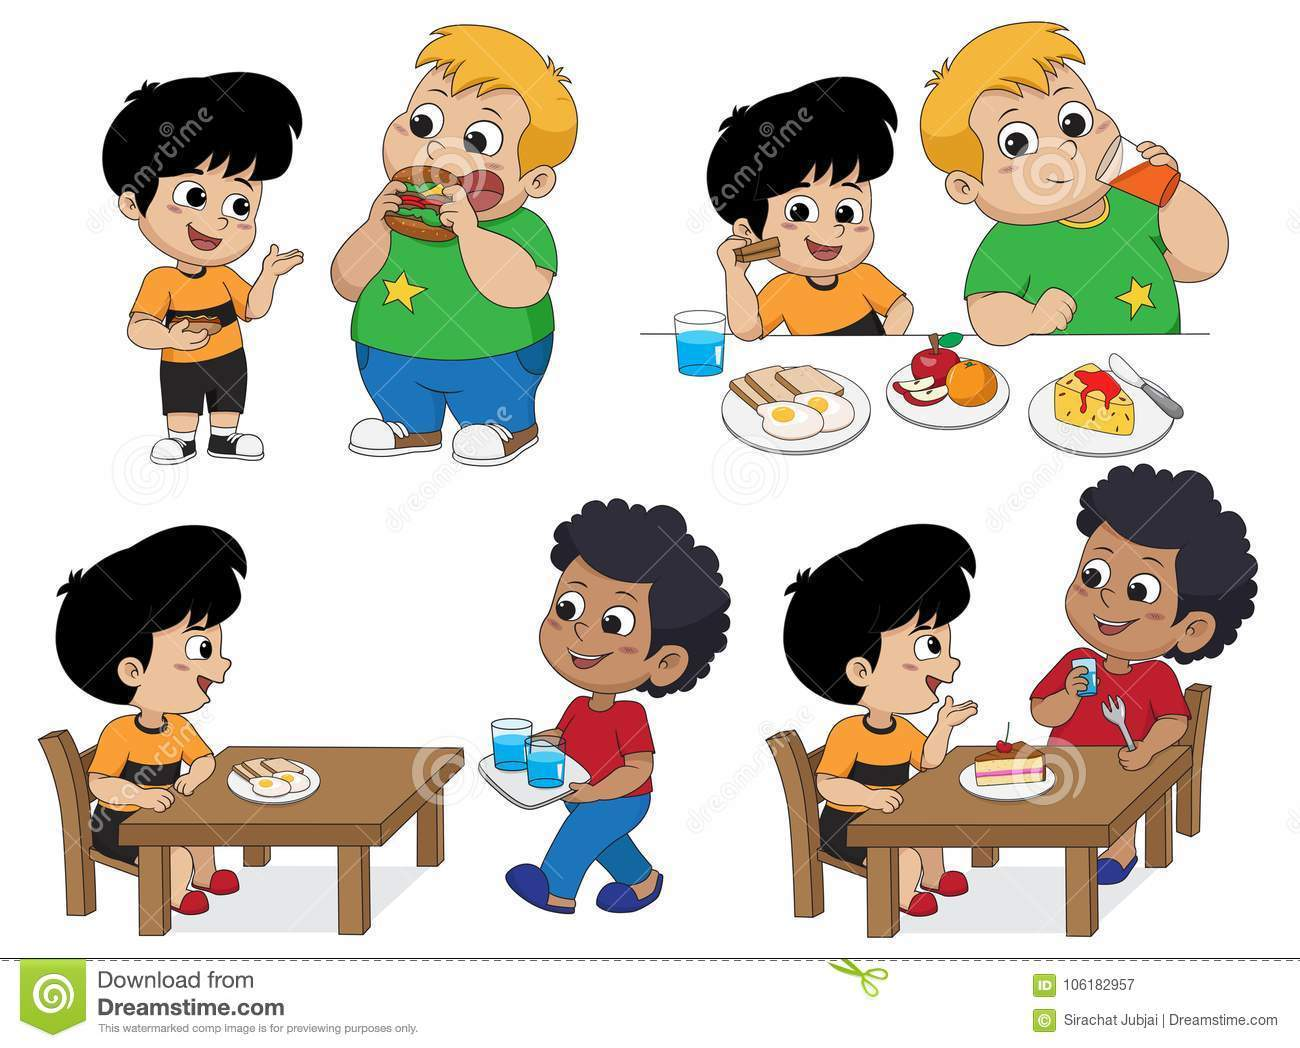 Sharing food with friends clipart 7 » Clipart Portal.